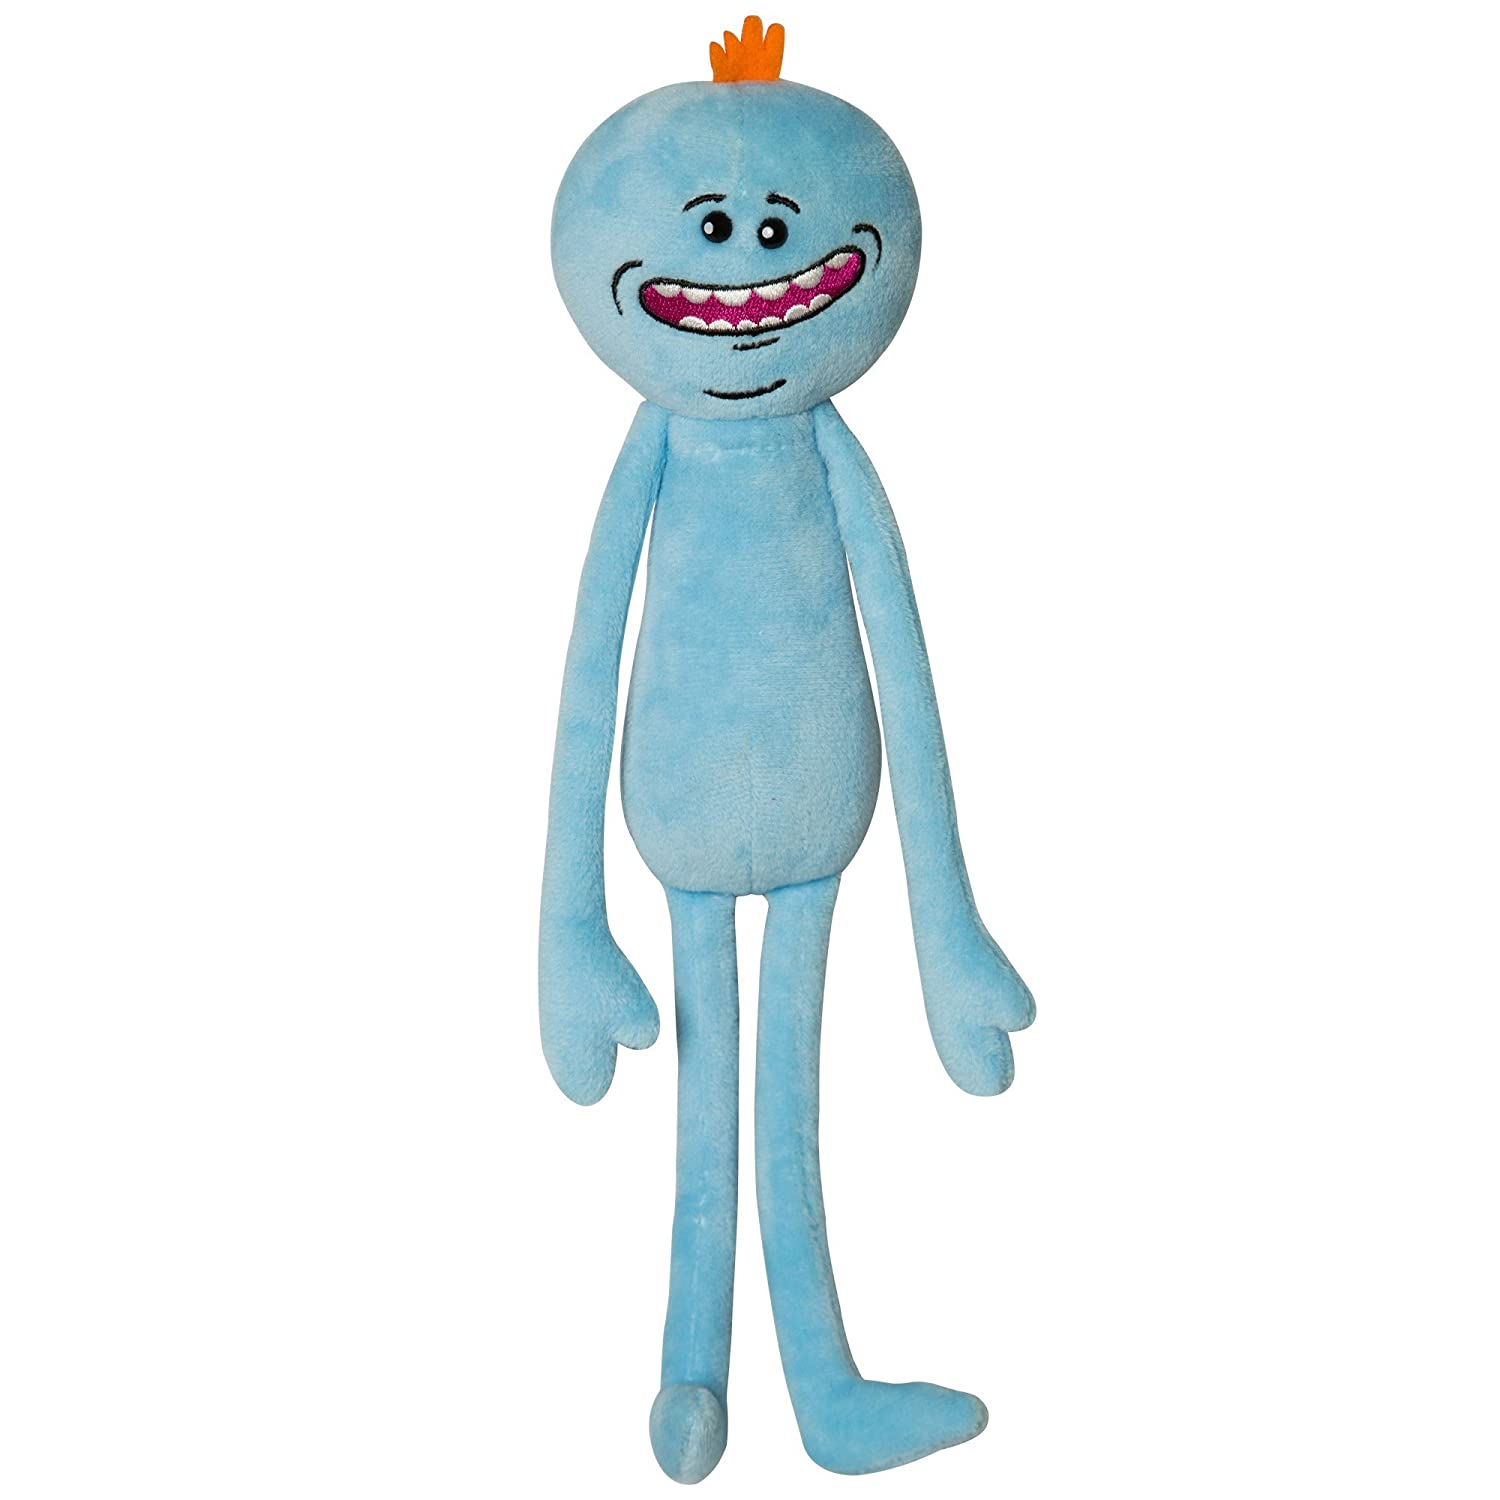 Meeseeks Happy Plush Stuffed Animal by JINX